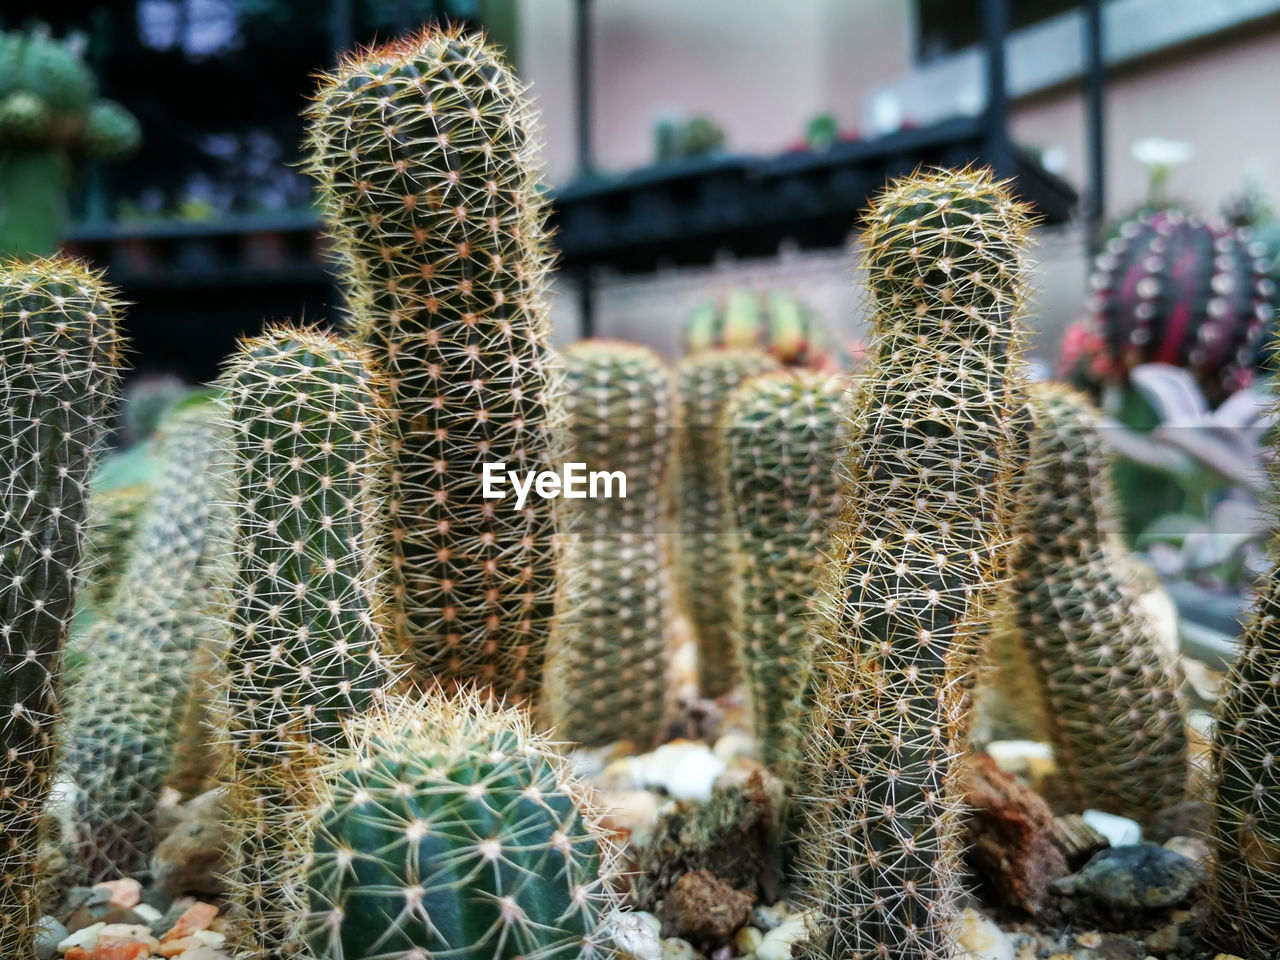 cactus, succulent plant, no people, thorn, plant, growth, focus on foreground, spiked, close-up, nature, sharp, green color, natural pattern, day, beauty in nature, outdoors, barrel cactus, communication, full frame, potted plant, plant nursery, ecosystem